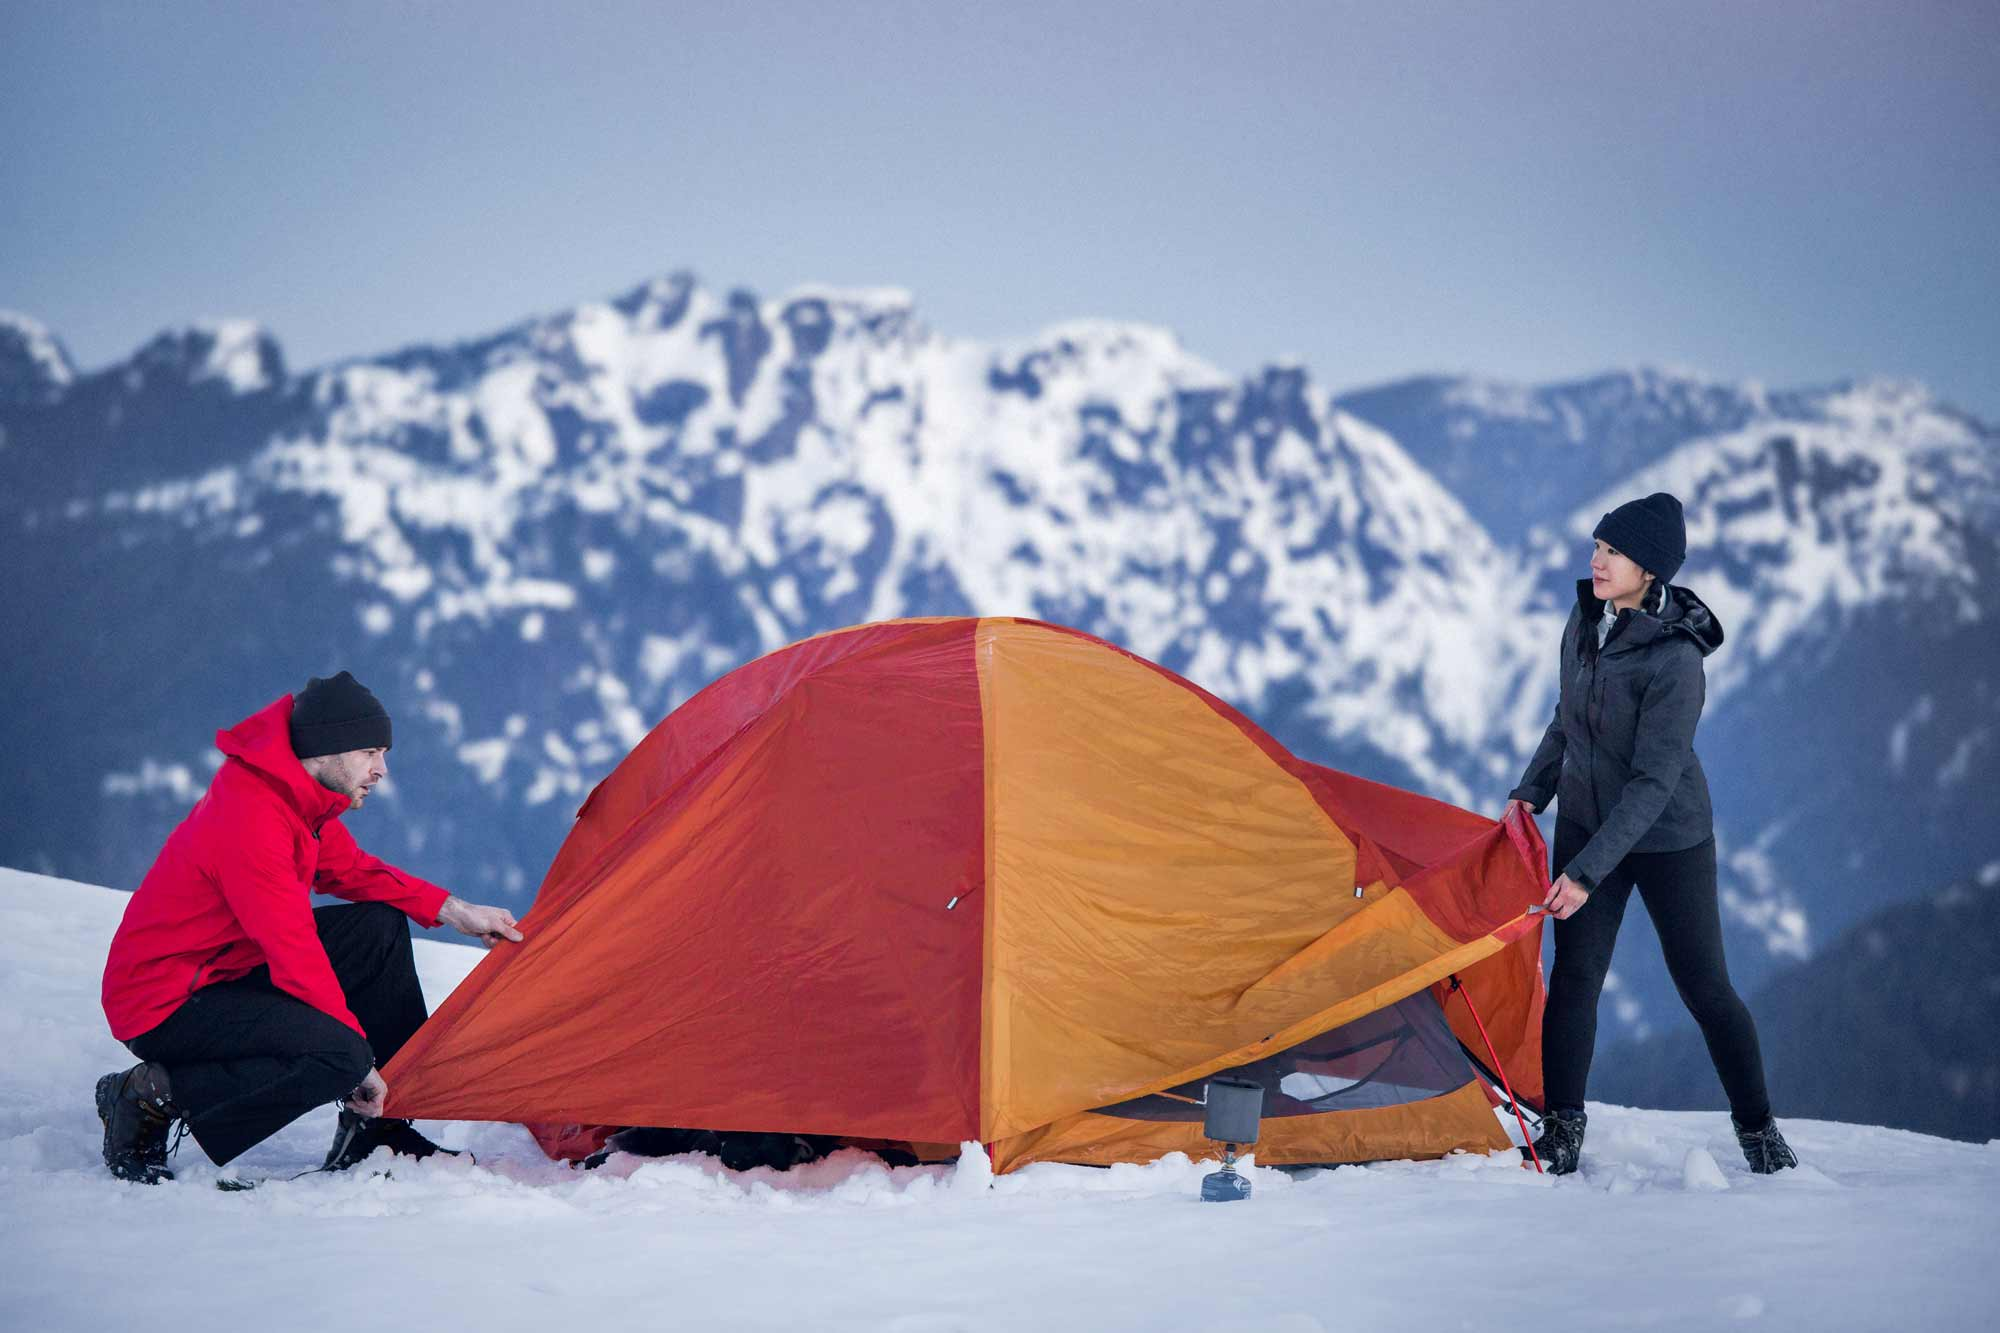 Adele and Thierry setting up a tent in the mountains of British Columbia